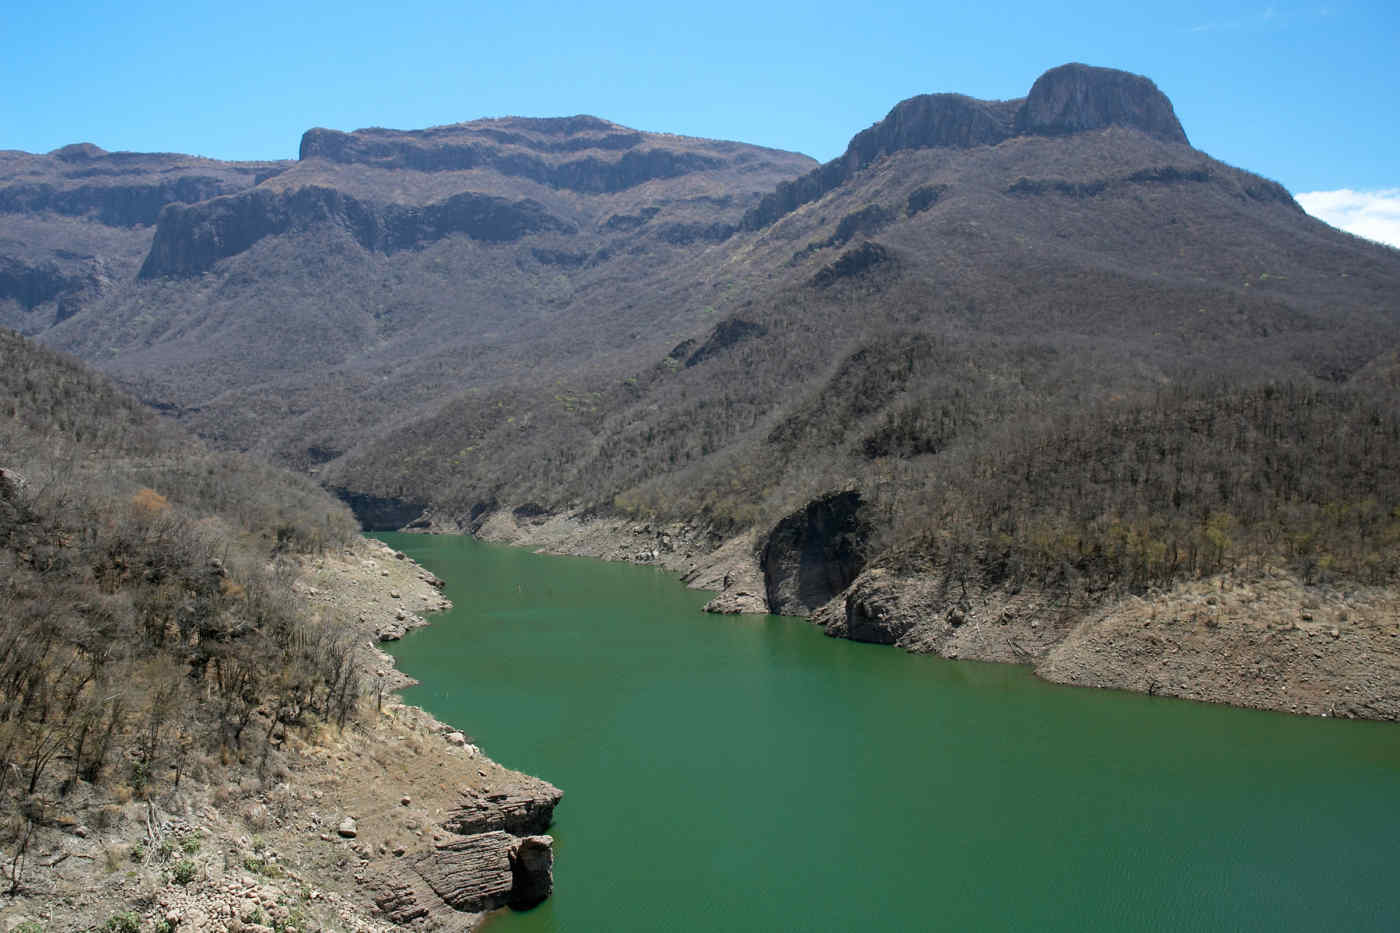 Copper Canyon Lake in Mexico